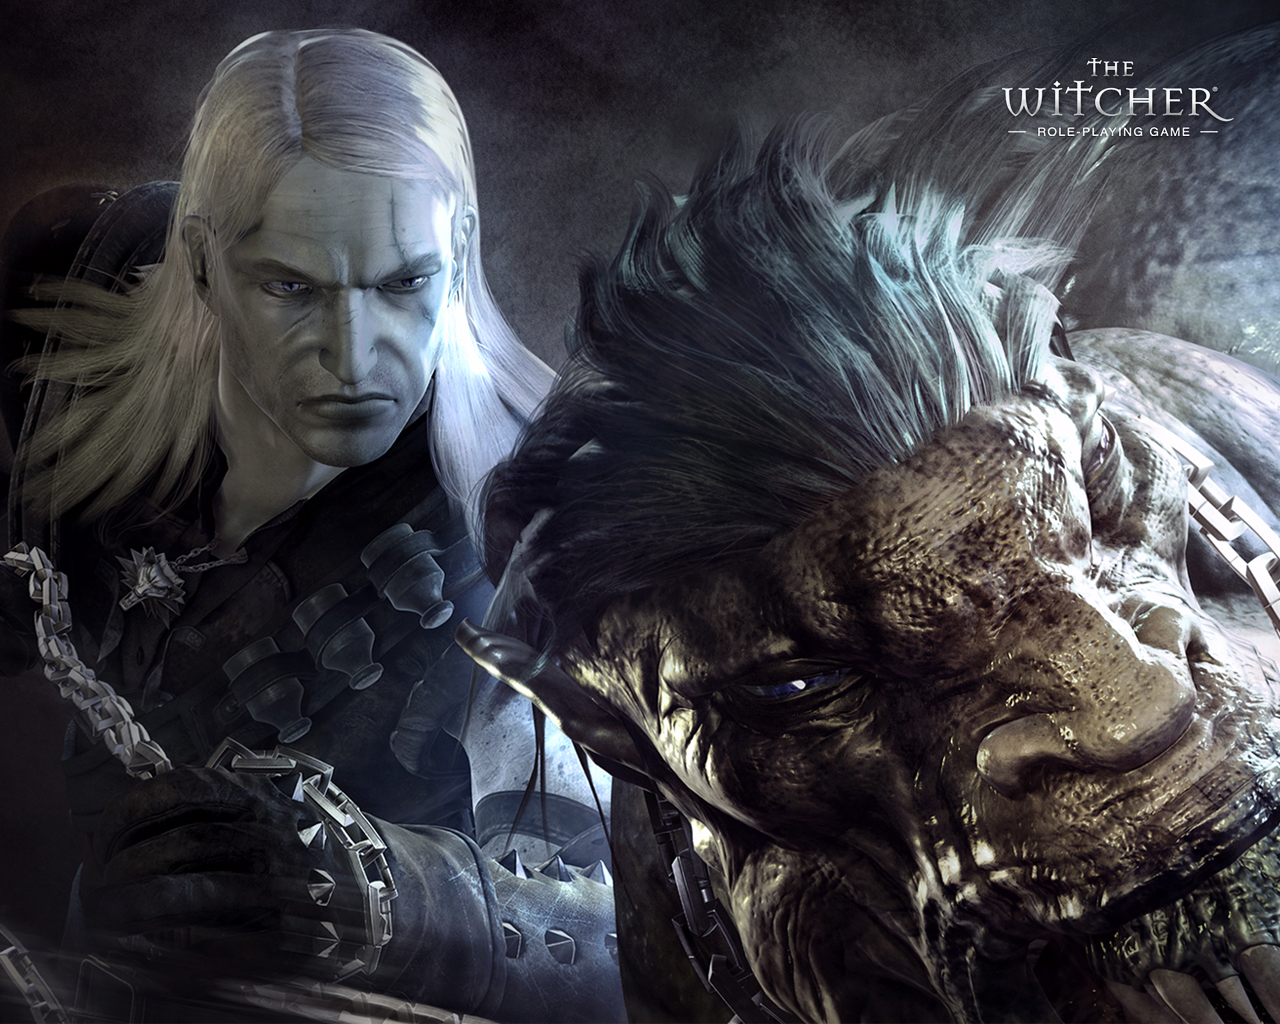 the witcher images witcher wallpapers hd wallpaper and background